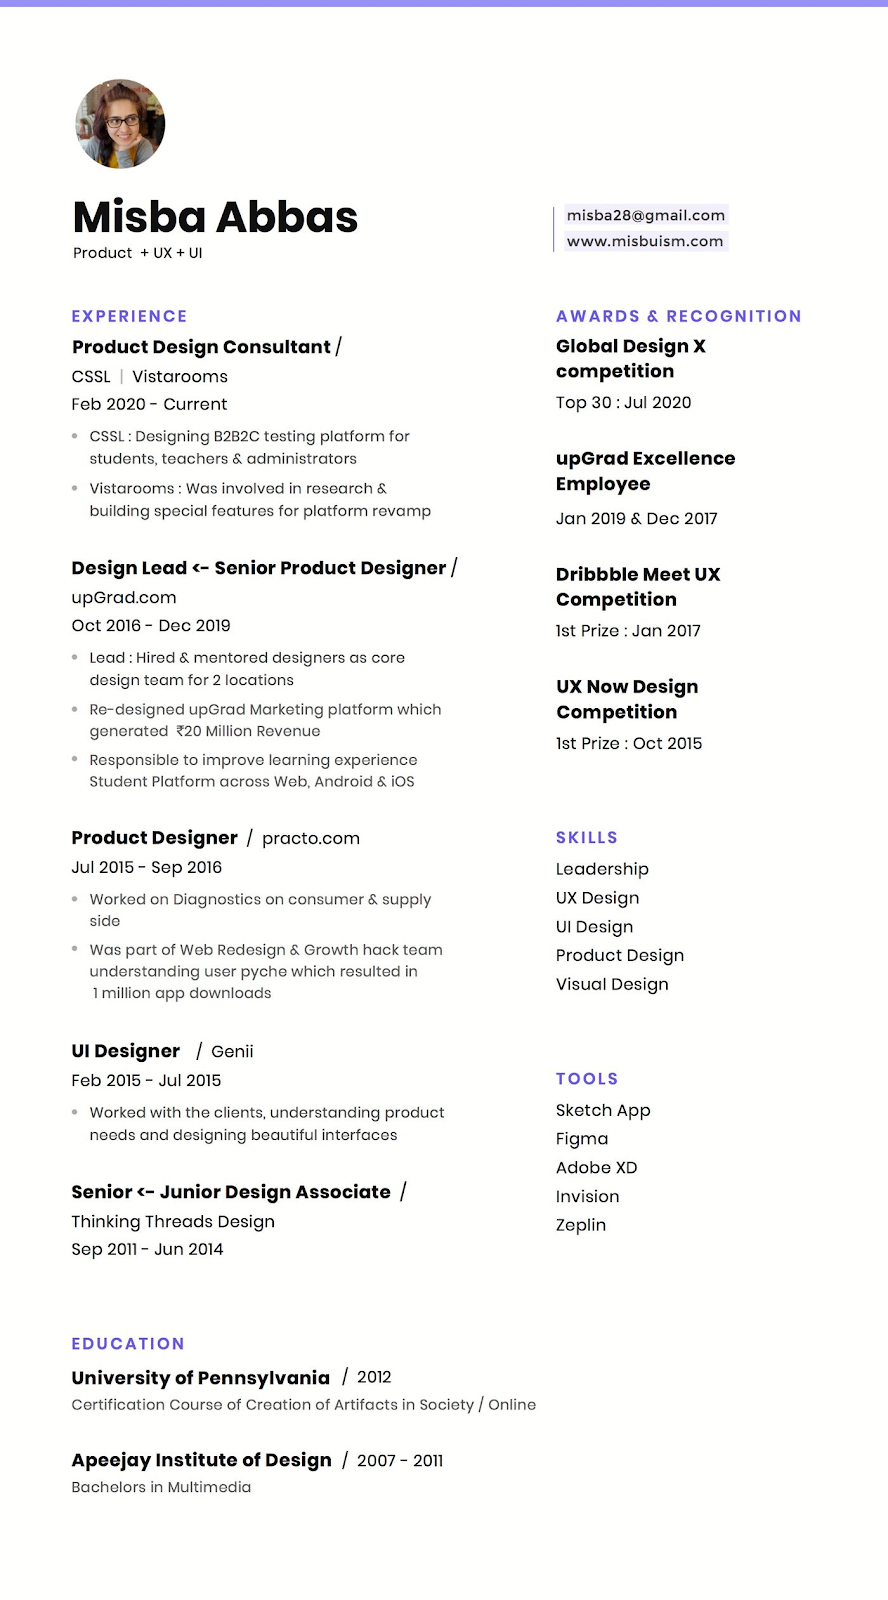 product designer resume with skills and tools